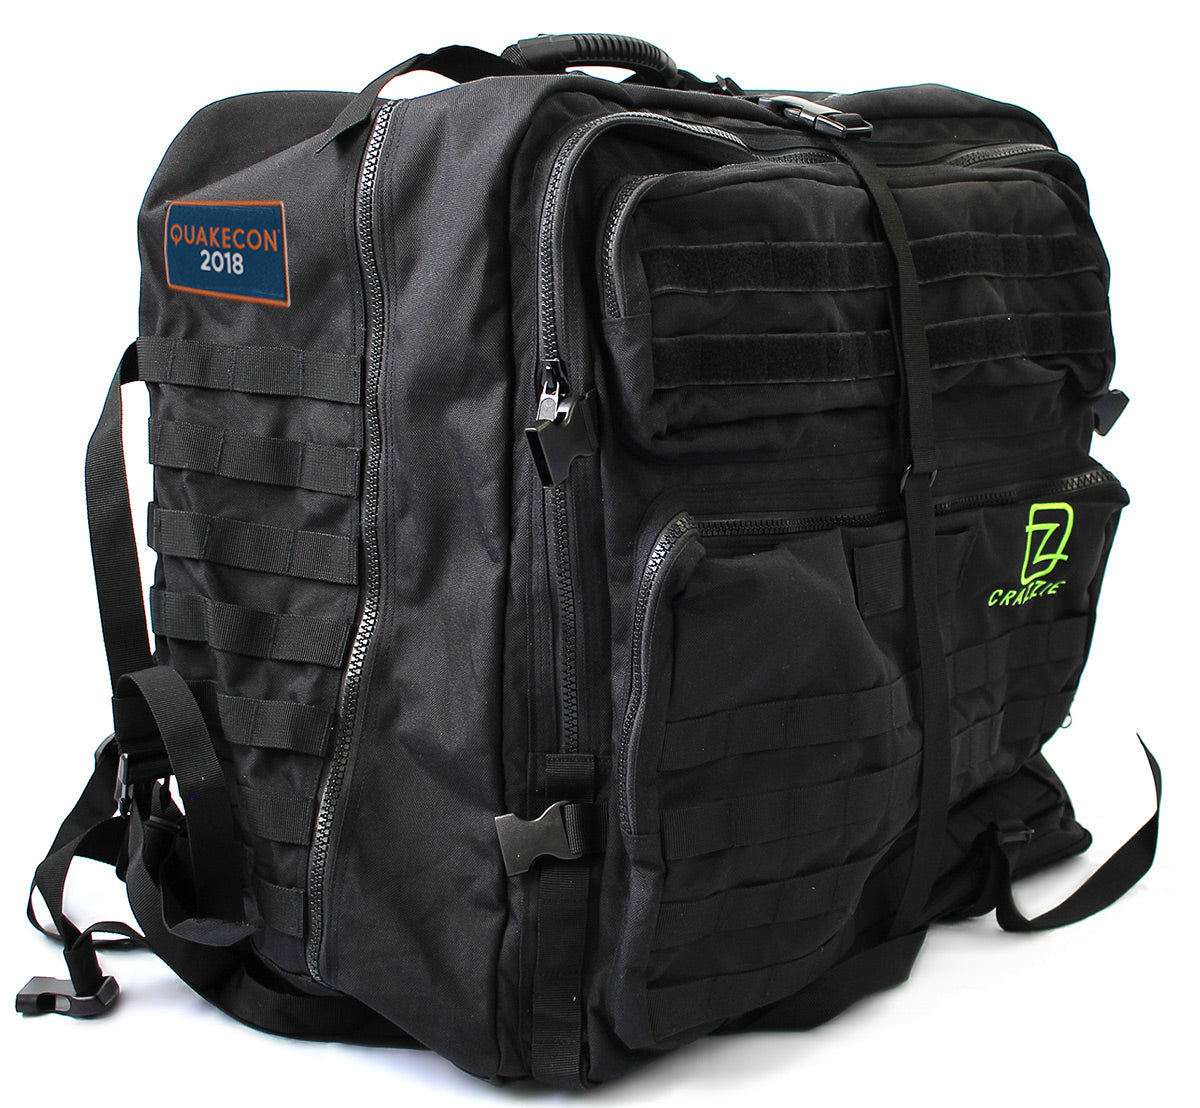 Quakecon 2018 Exclusive GTR Backpack (Only 250 Available) FREE SHIPPING